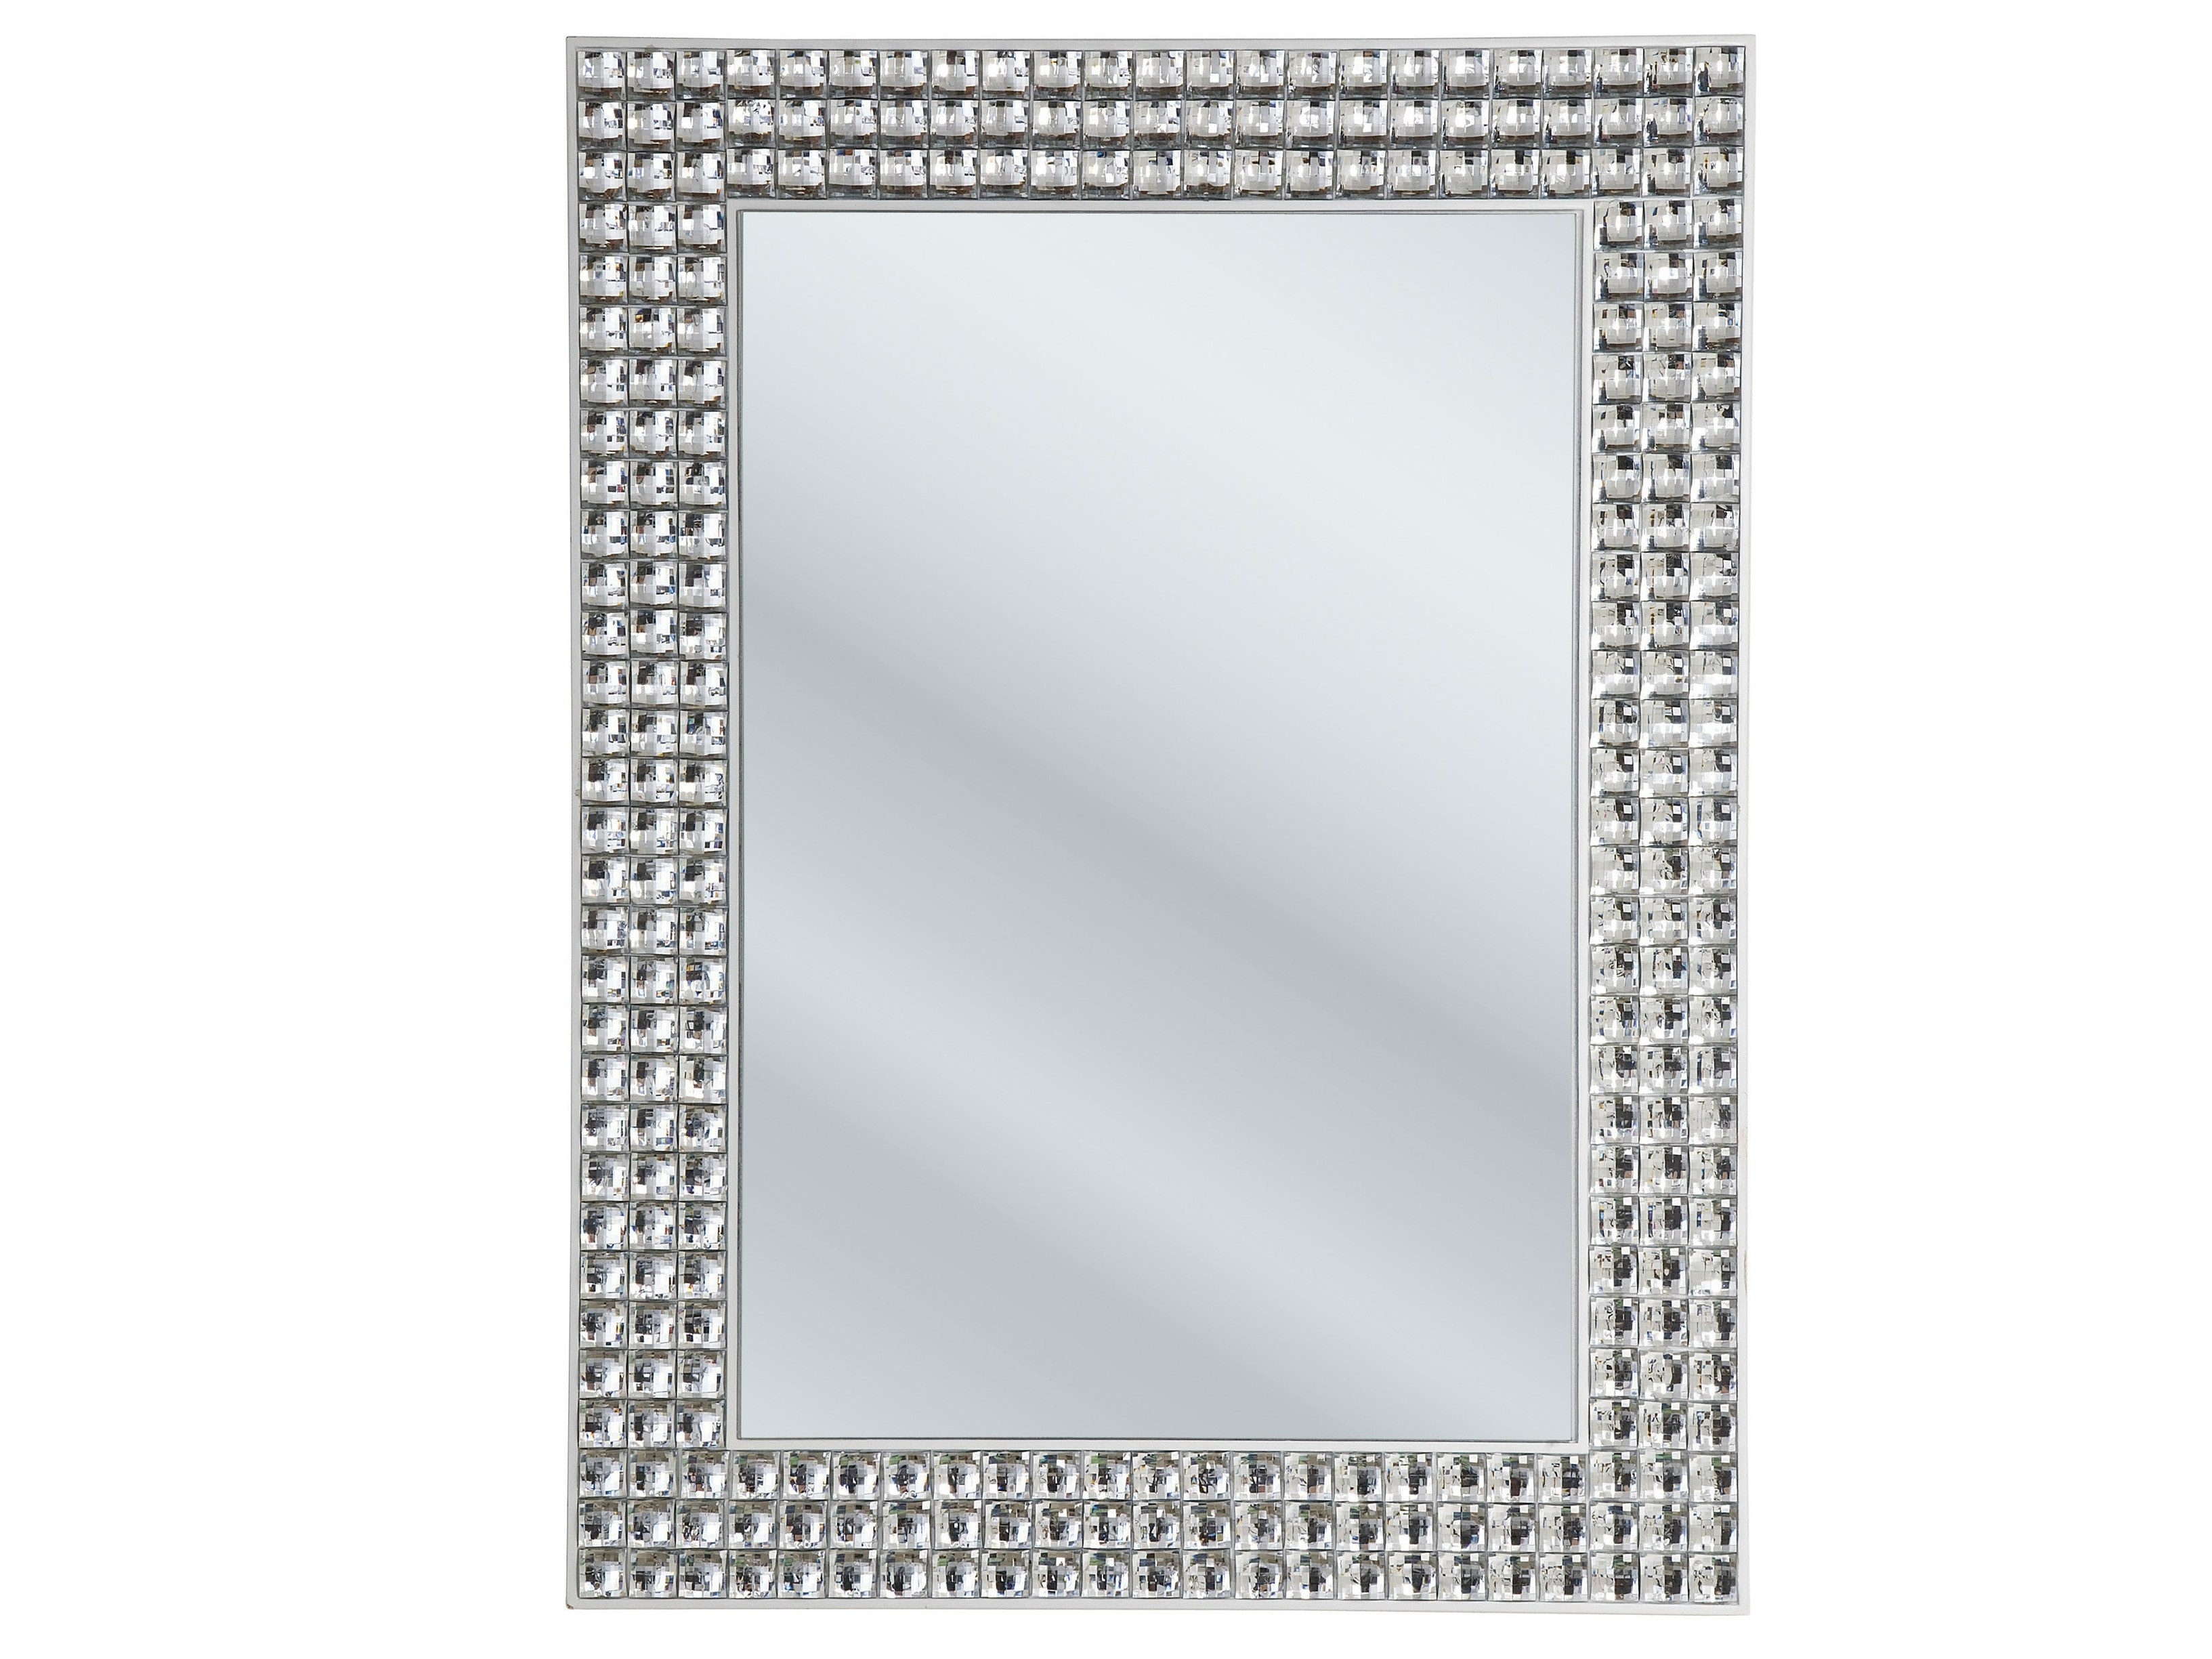 Crystals Wall Mounted Mirror Kare Design With Regard To Wall Mirror With Crystals (Image 7 of 15)